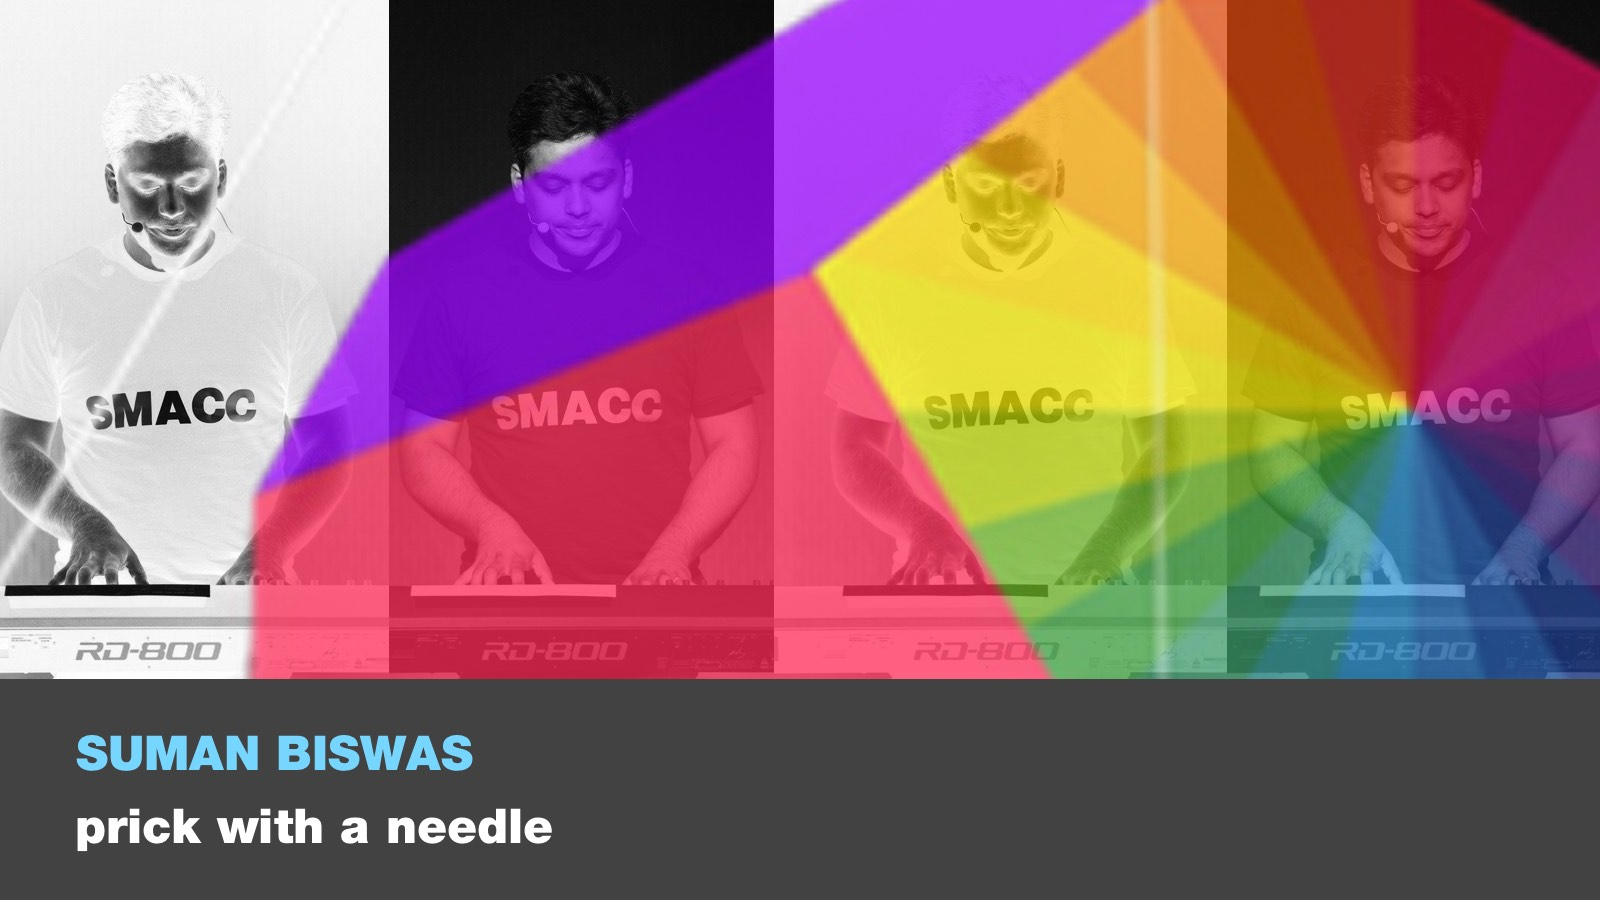 Suman Biswas - Prick with a needle